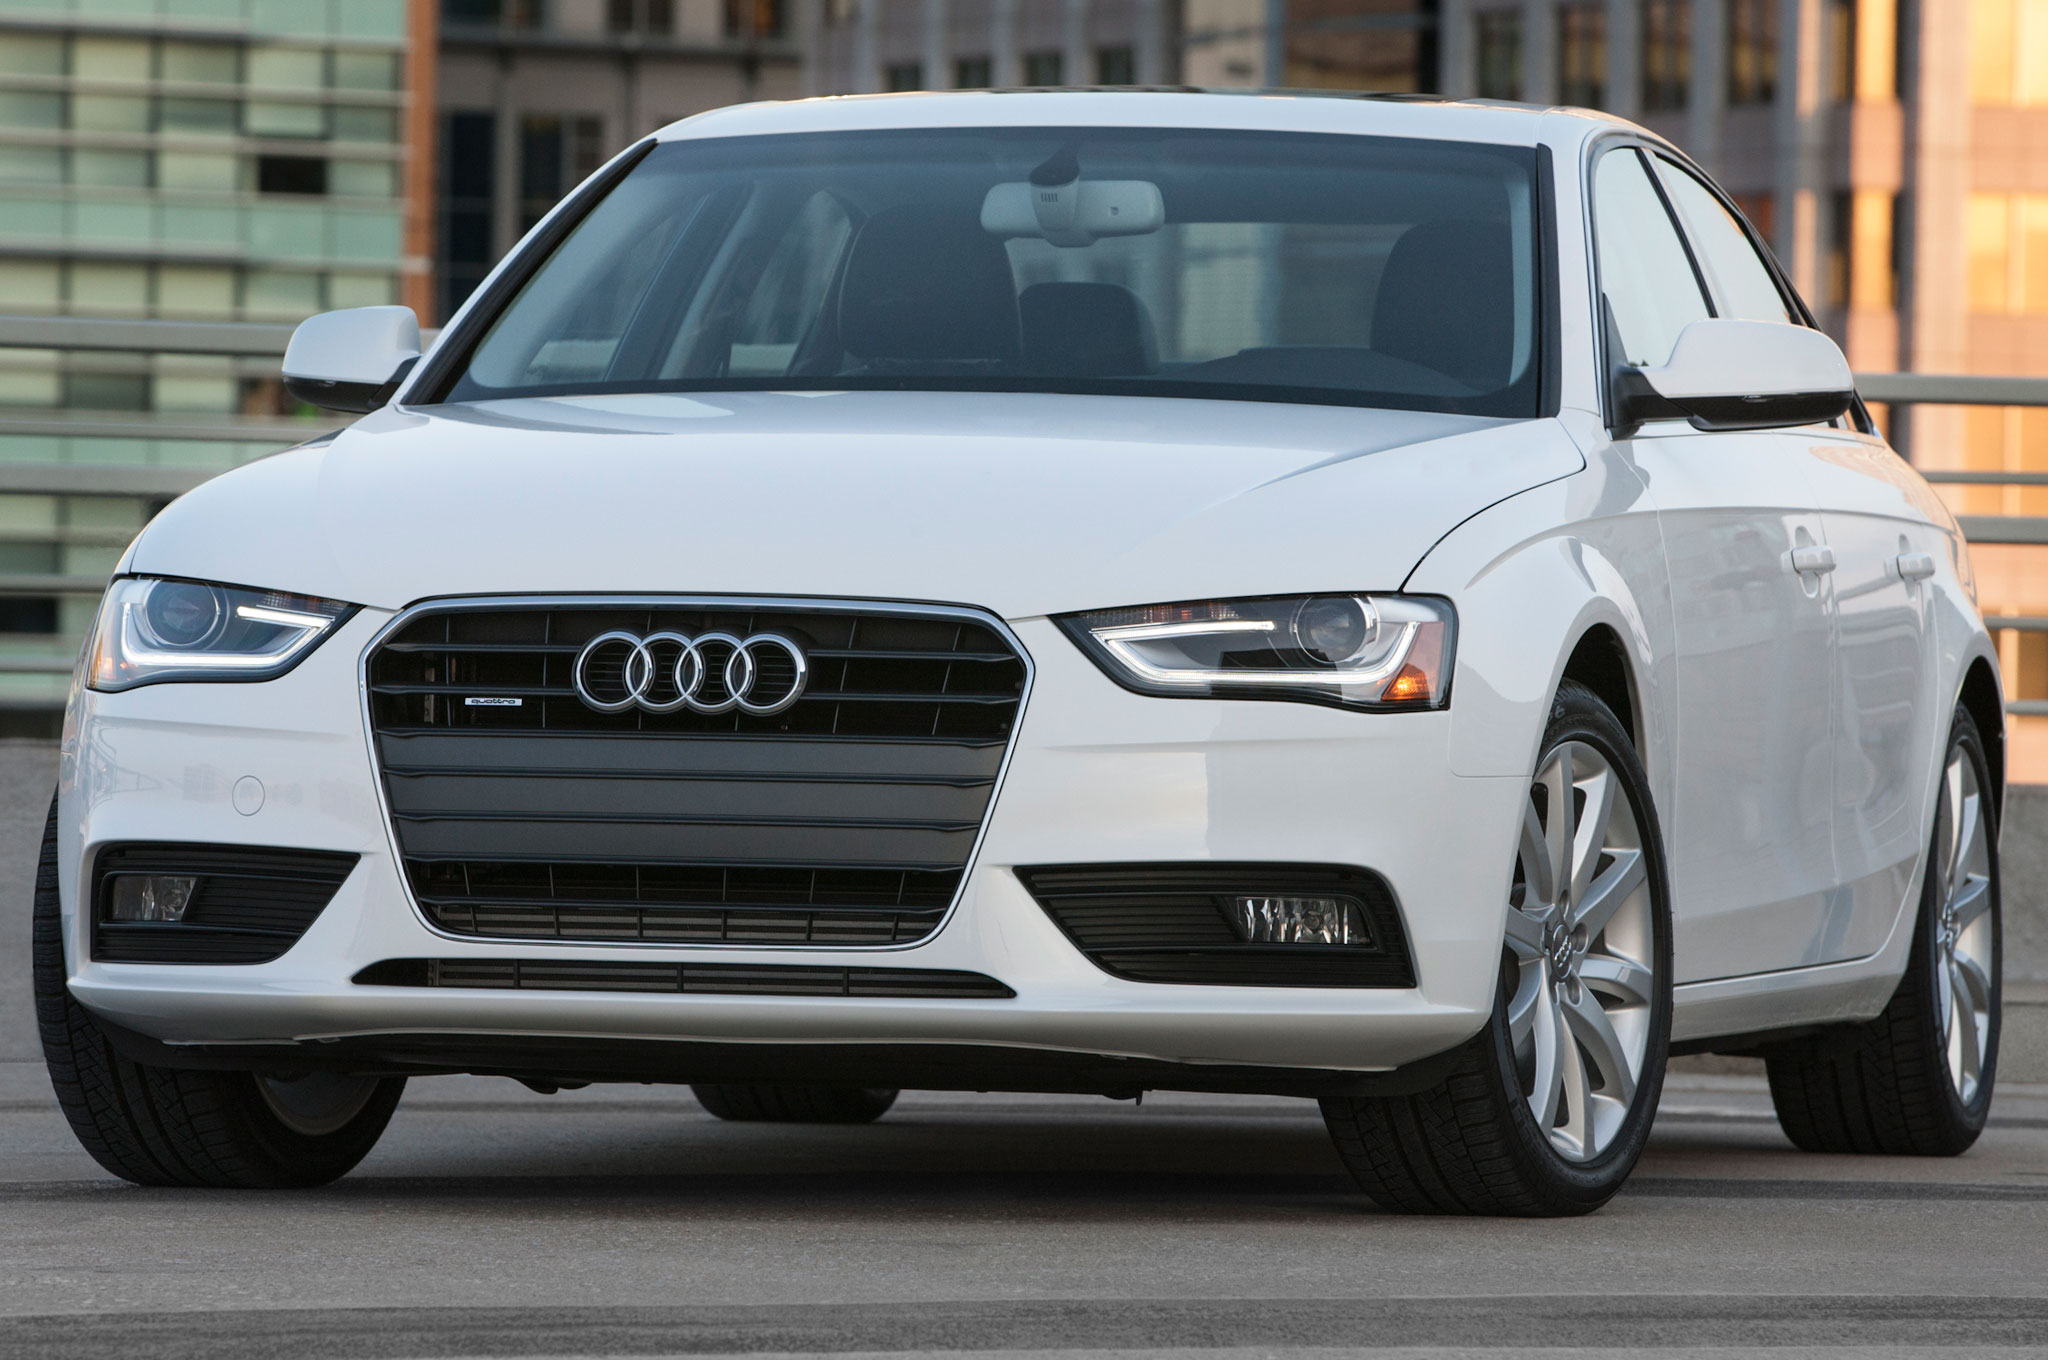 2014 audi lineup pricing revealed from q5 to a8 w12. Black Bedroom Furniture Sets. Home Design Ideas